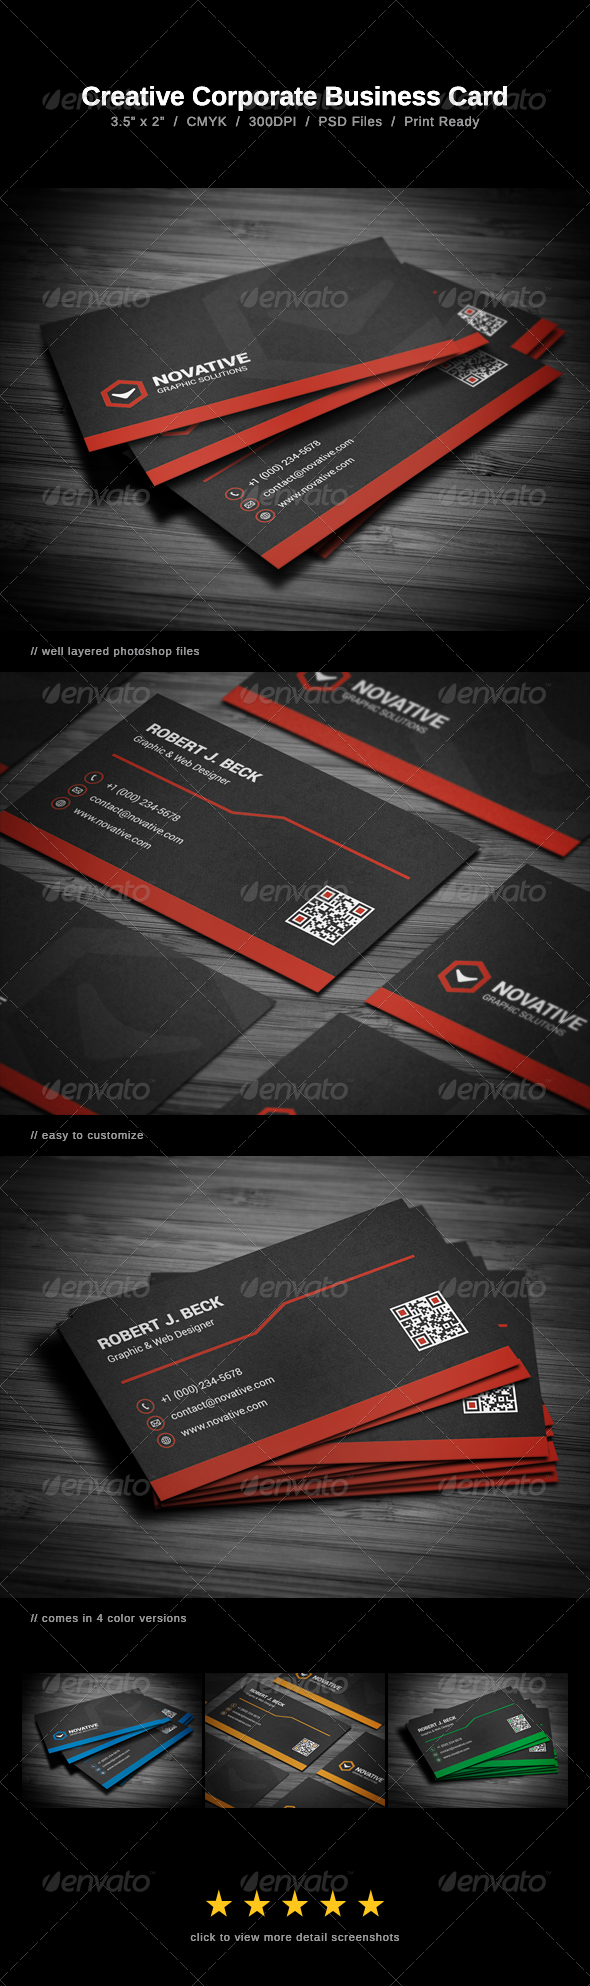 GraphicRiver Creative Corporate Business Card 7460388